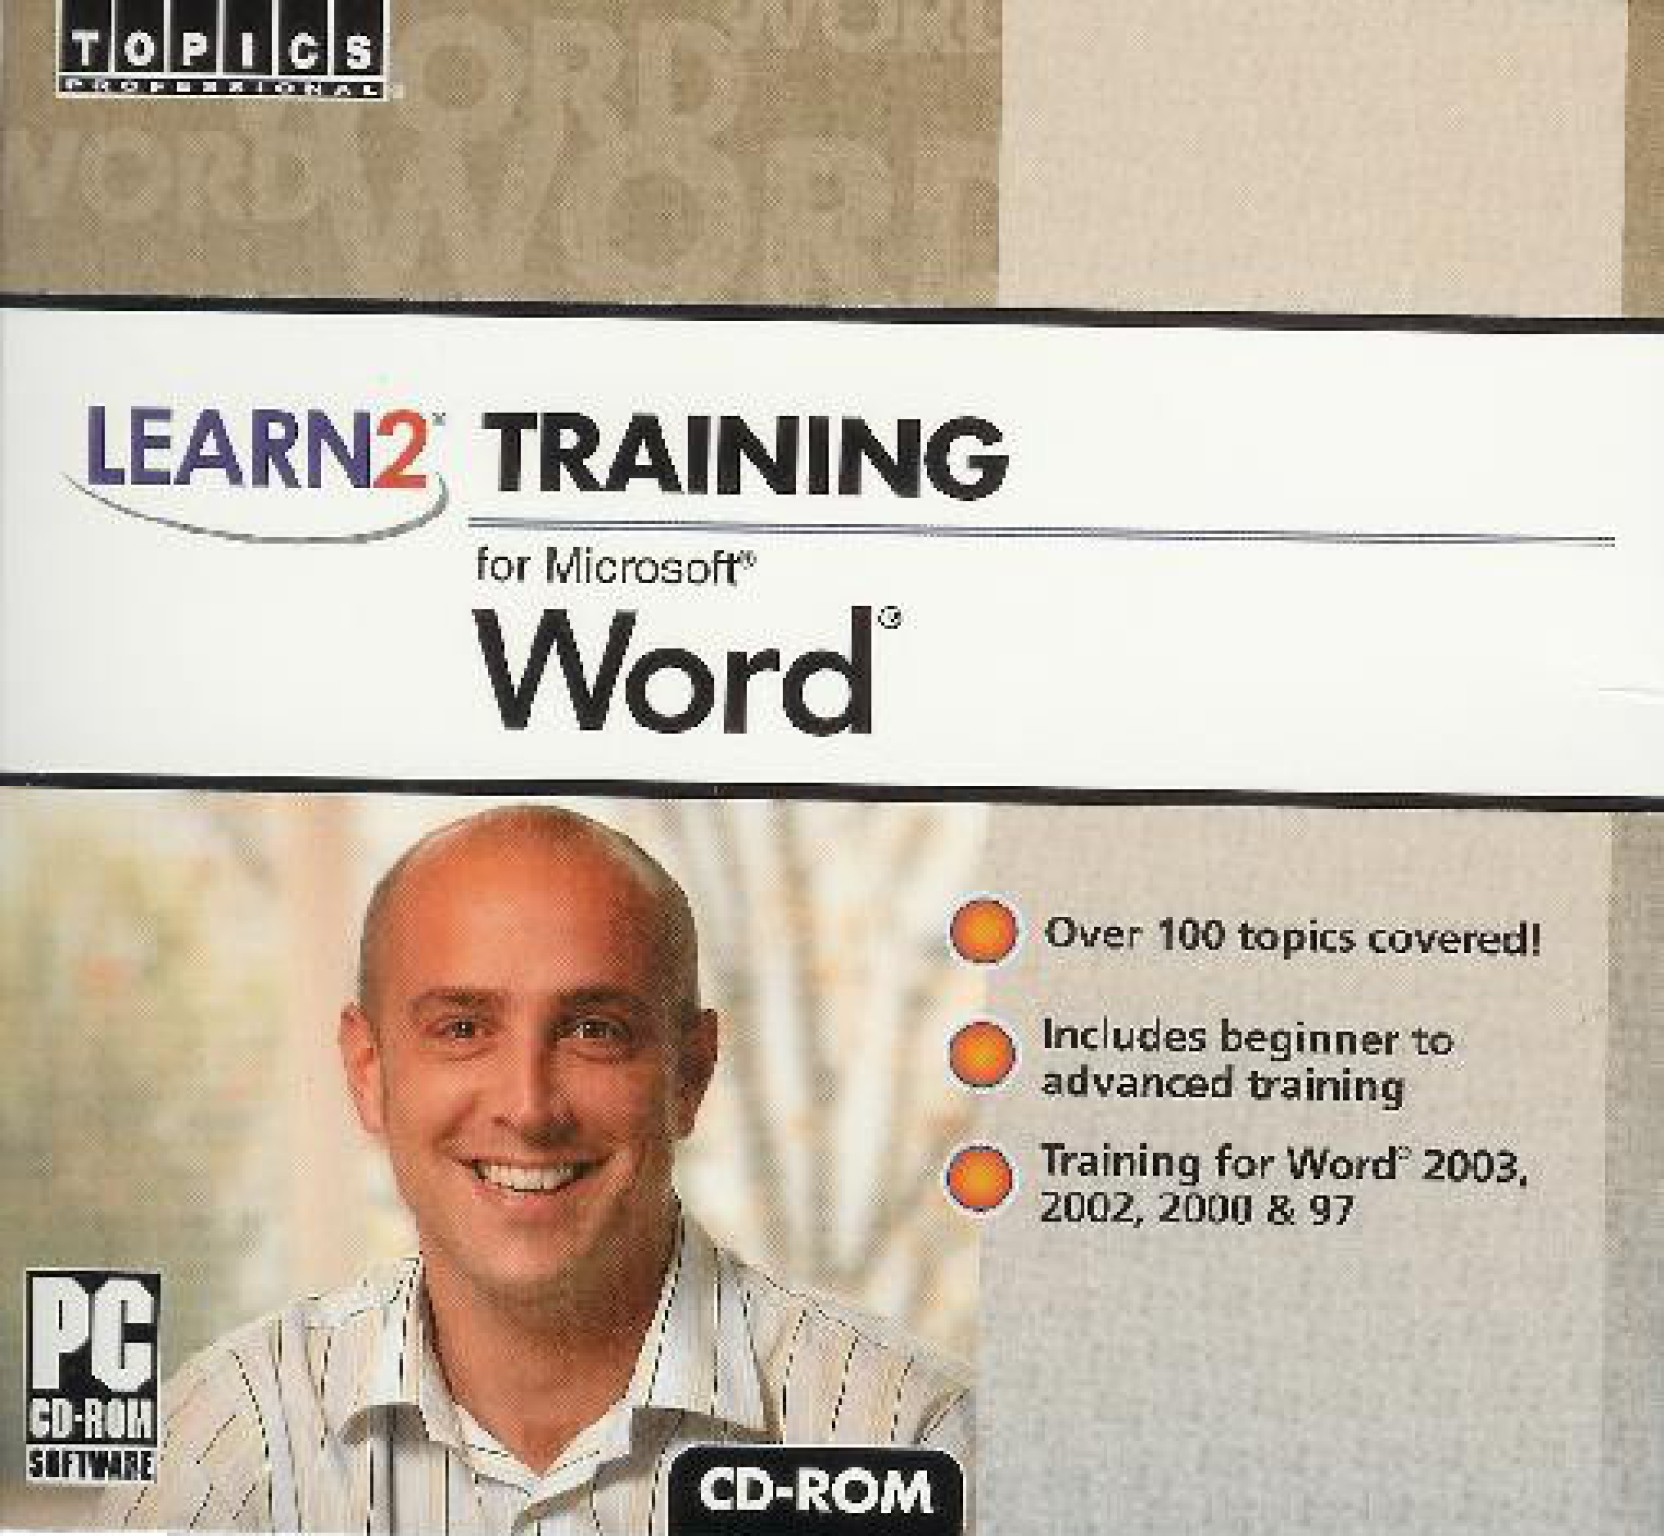 Learning Microsoft Word 2000 With CDROM